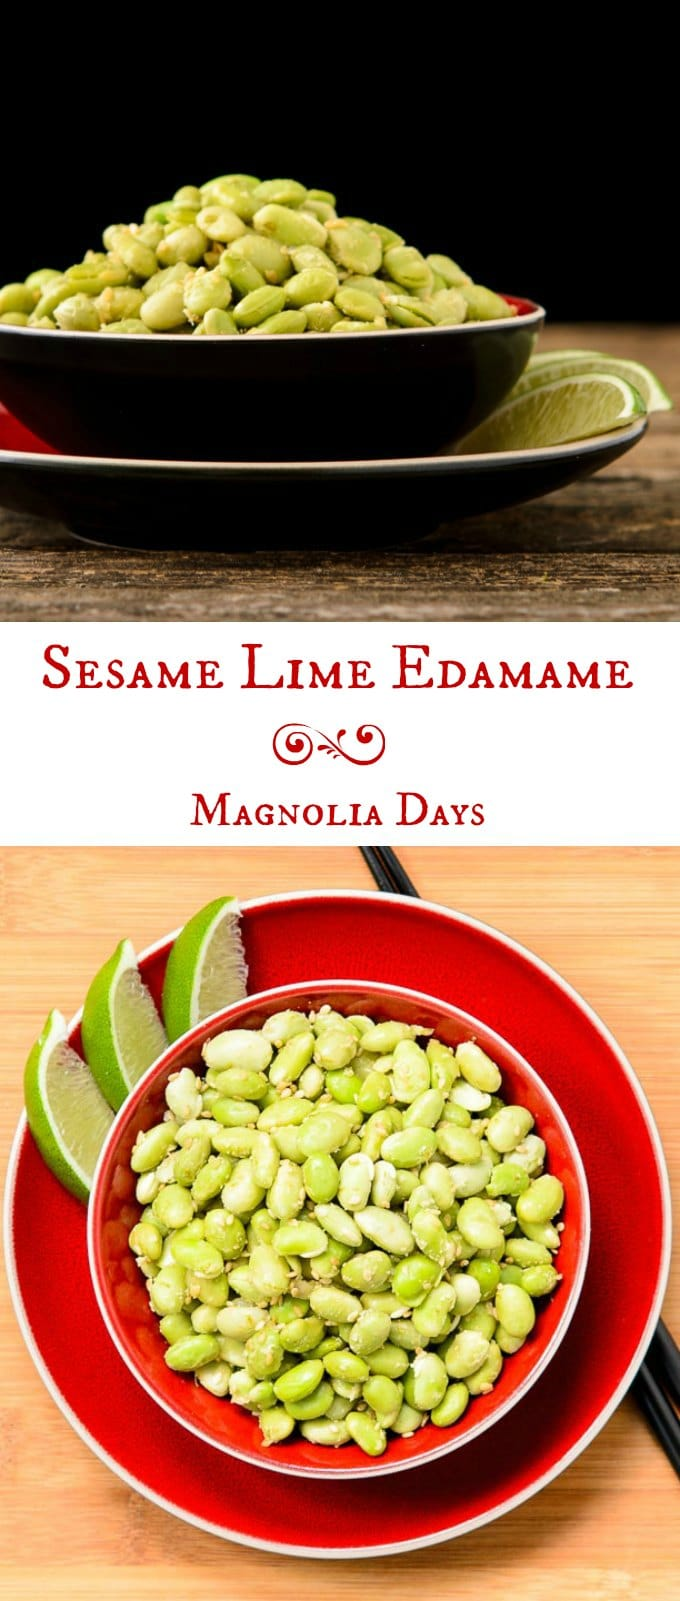 Sesame Lime Edamame with toasted sesame seeds and fresh lime juice and zest. Make it in a few minutes for a delicious side or appetizer.